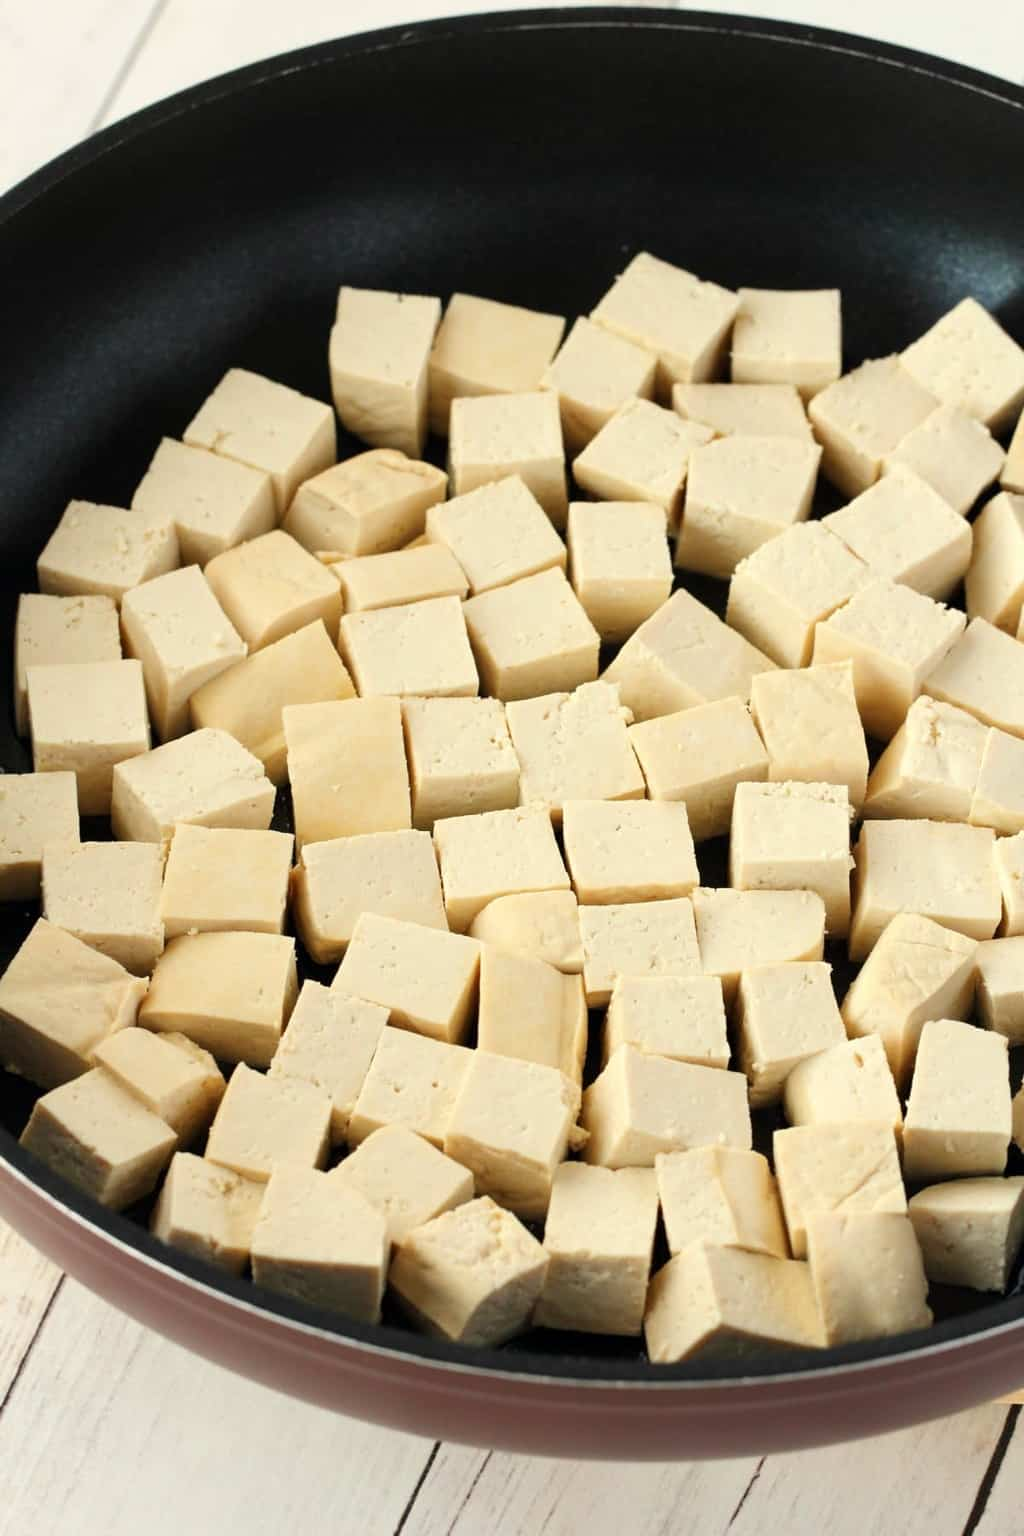 Cubes of tofu in a frying pan.